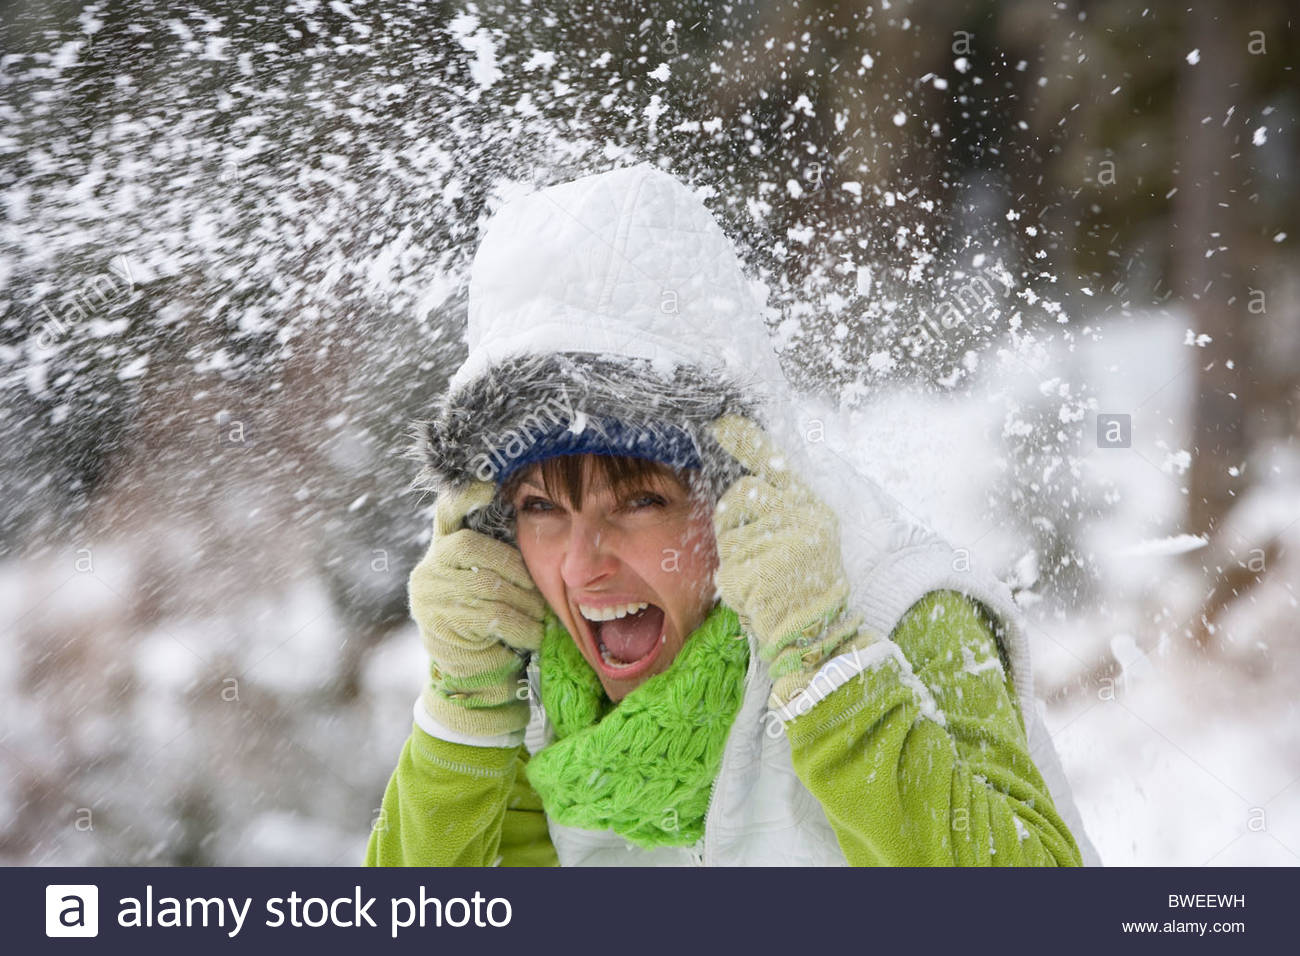 Shouting woman getting hit with snowball - Stock Image